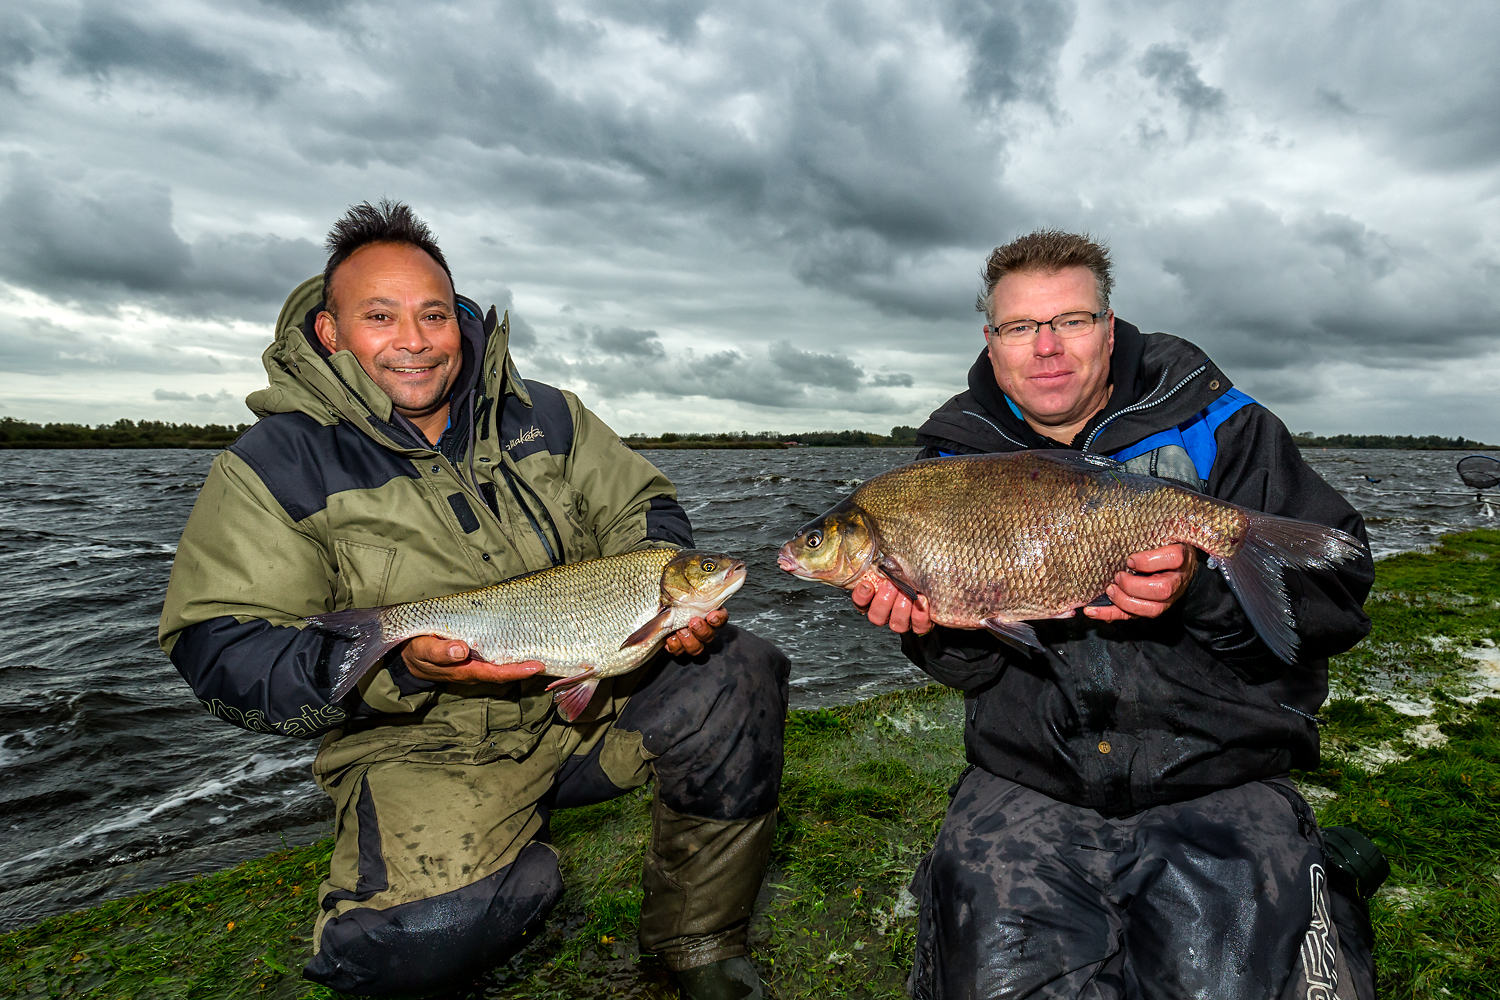 Big ide and bream from the Lauwersmeer